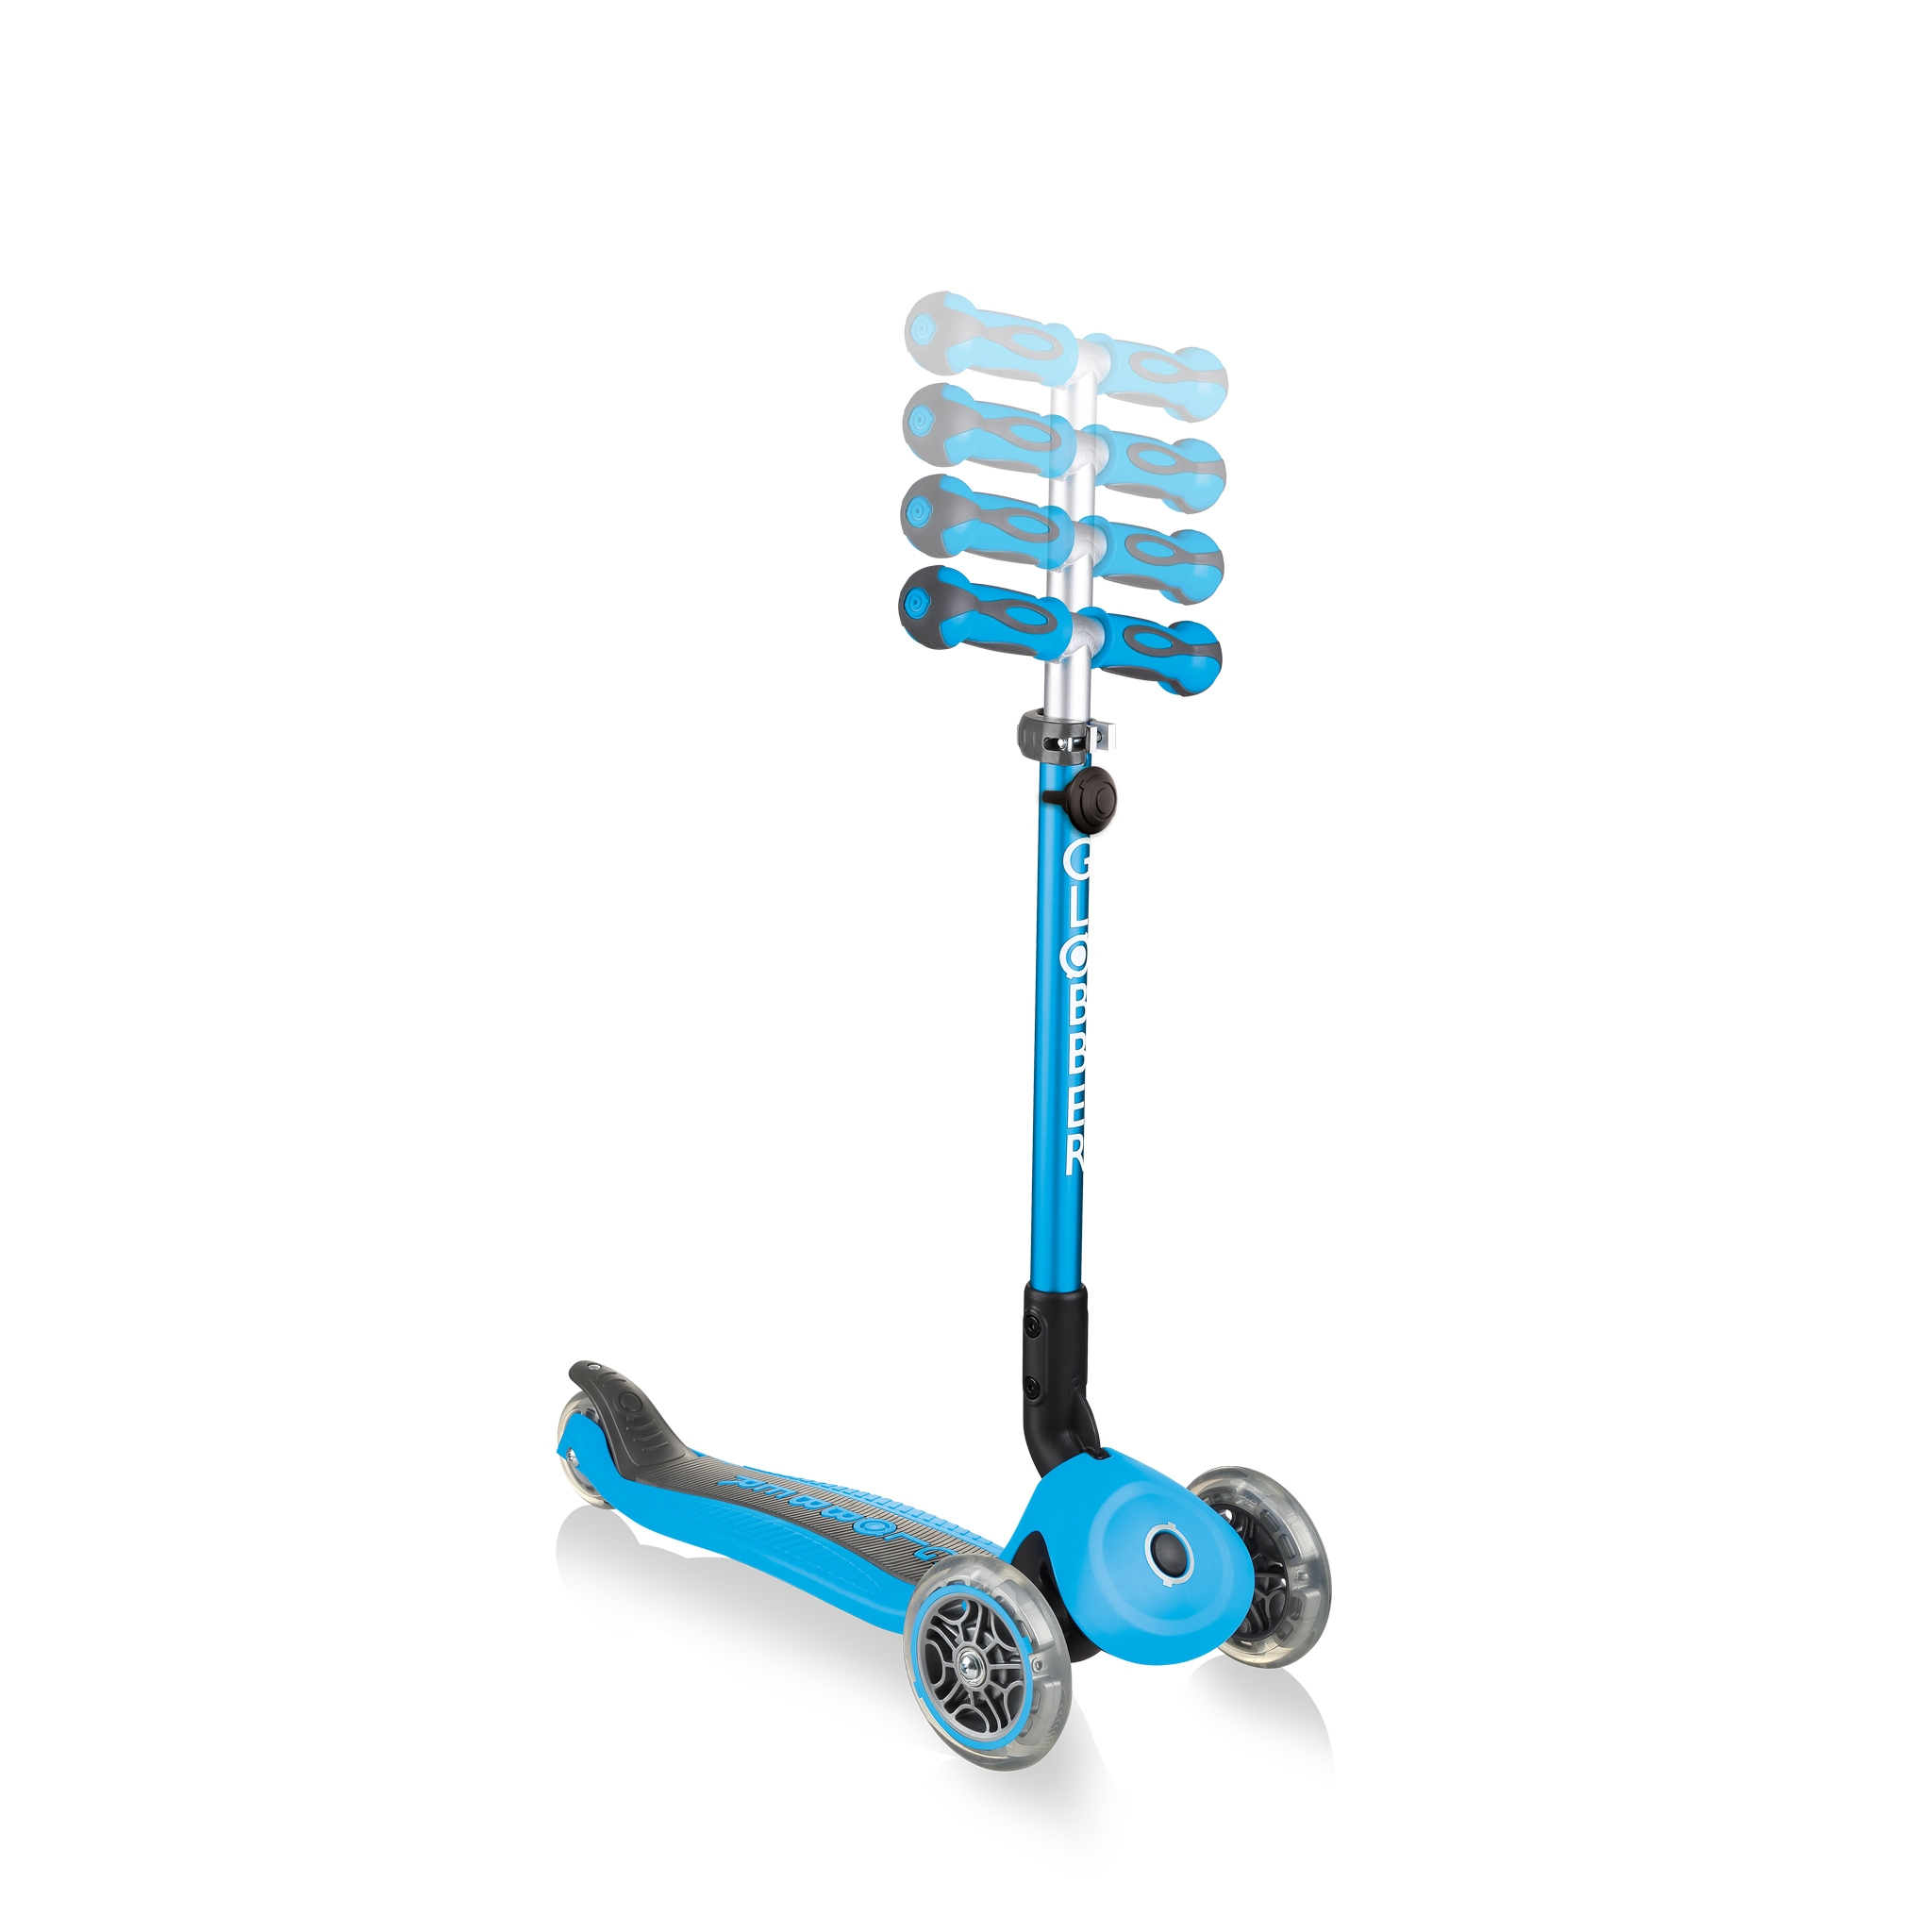 GO-UP-DELUXE-GO-UP-DELUXE-ride-on-walking-bike-scooter-with-4-height-adjustable-T-bar-sky-blue